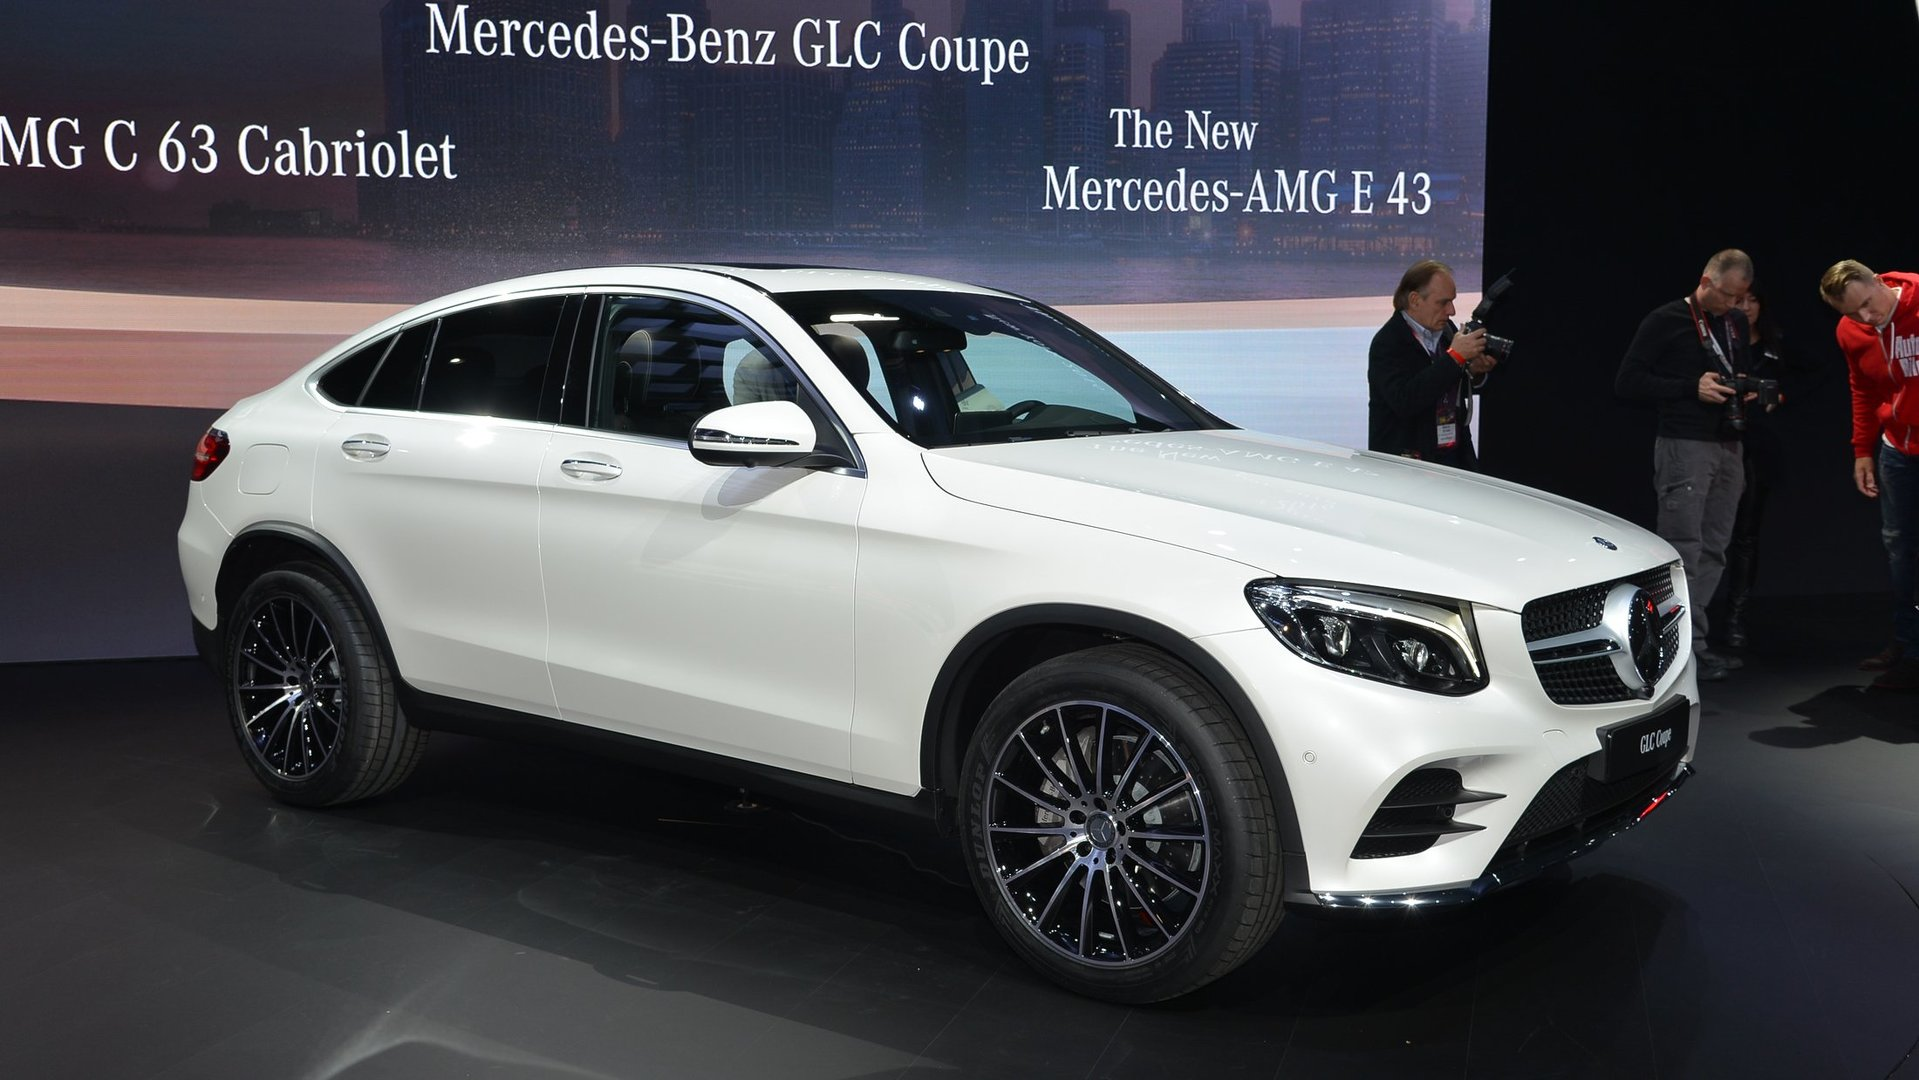 Mercedes 2019 Gle >> Mercedes GLC Coupe officially unveiled [videos]